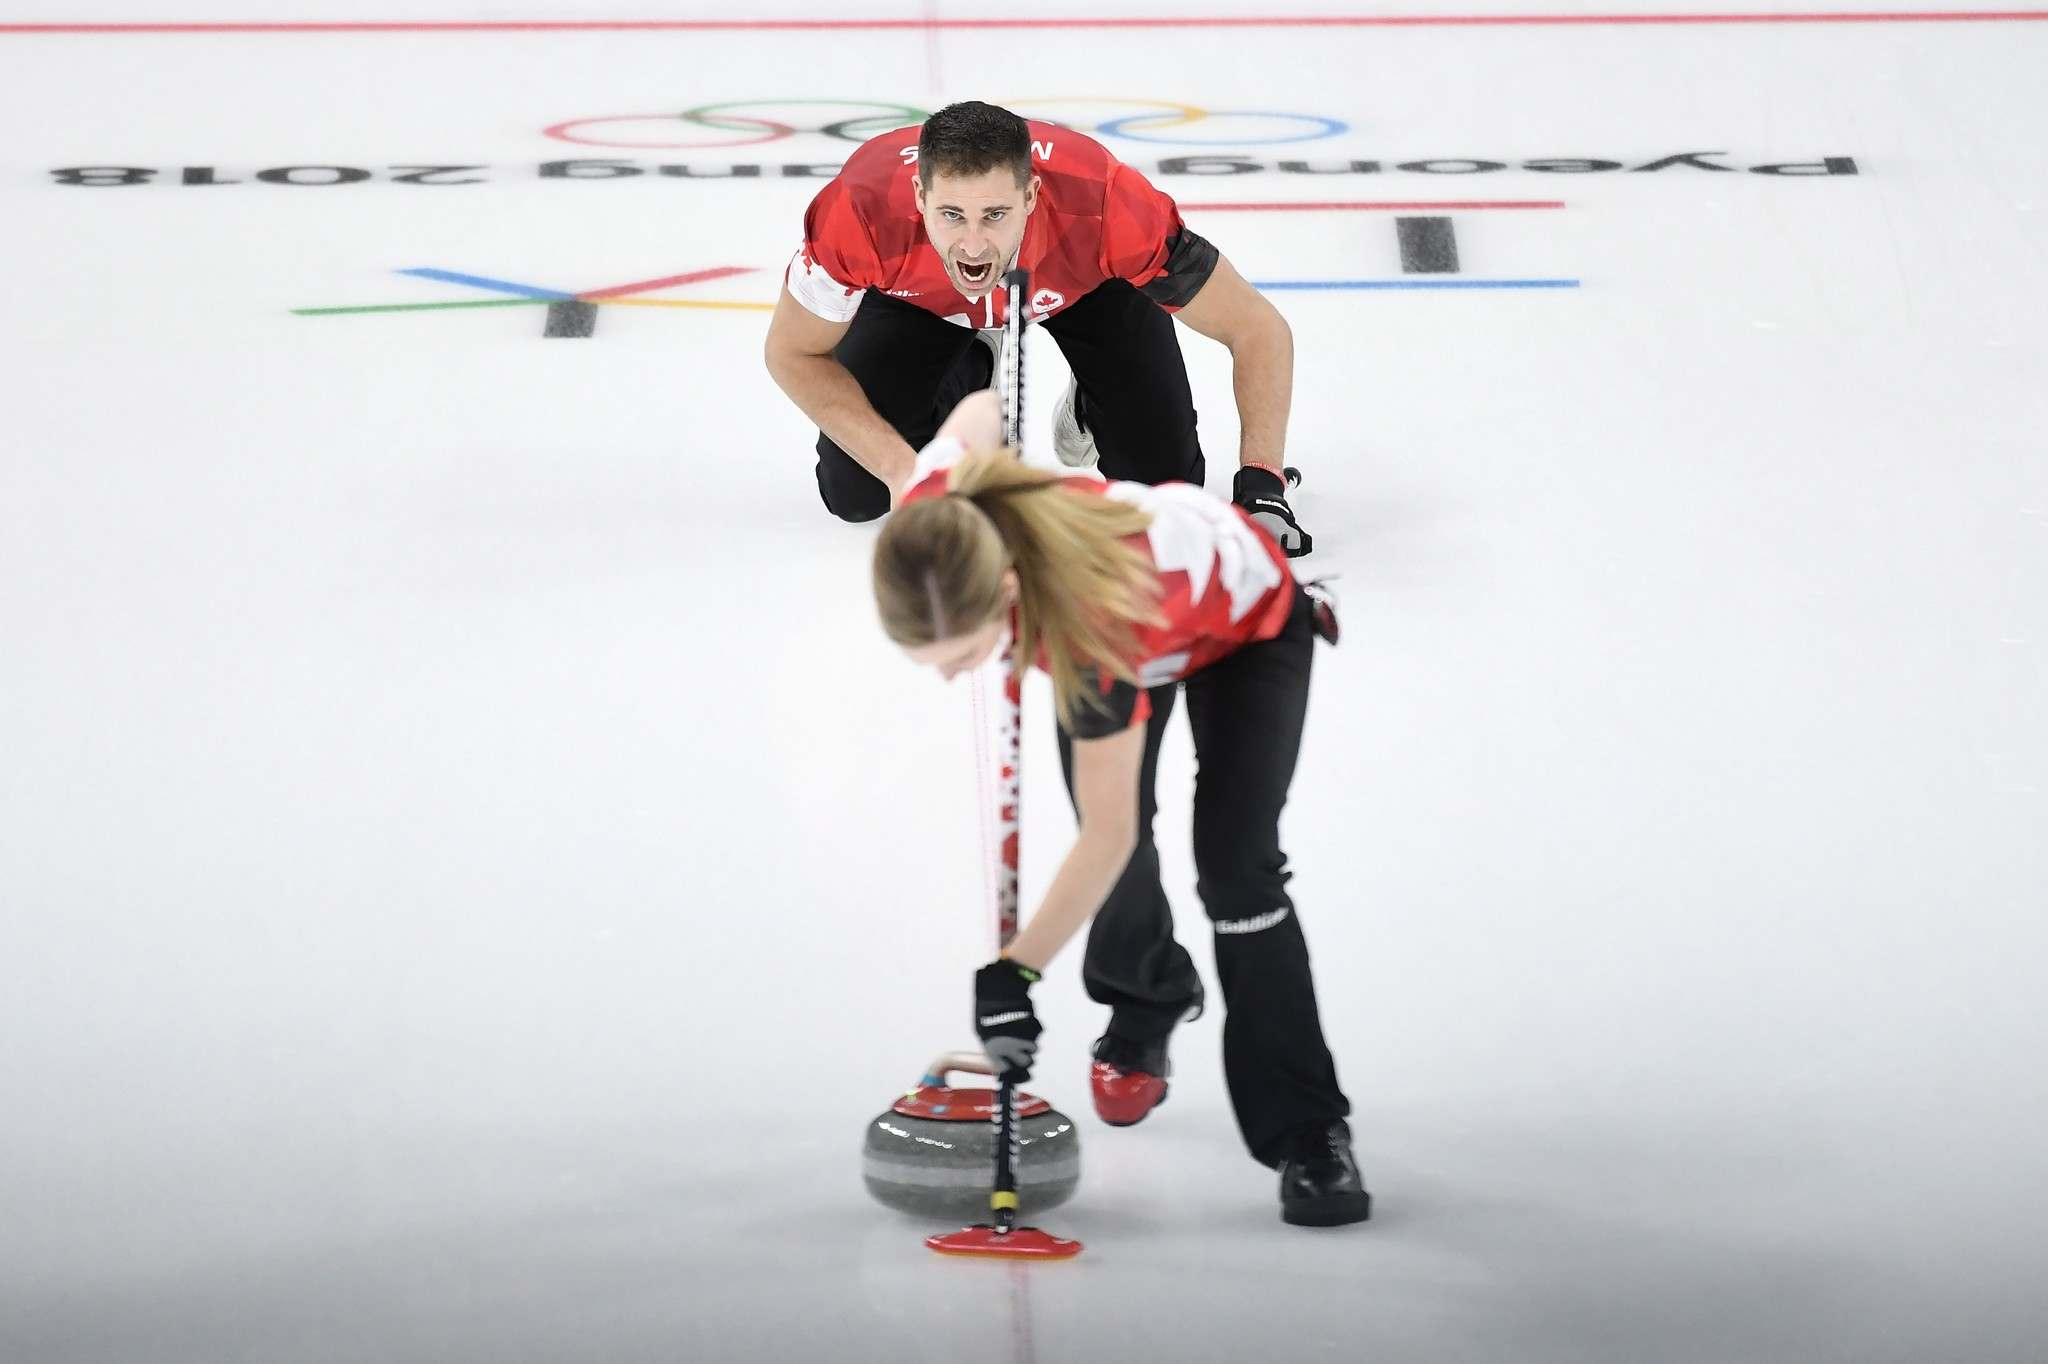 Nathan Denette / The Canadian Press</p><p>Canada&#39;s Kaitlyn Lawes and teammate John Morris play their stone during mixed doubles gold-medal curling action against Switzerland at the Olympic Winter Games in Gangneung, South Korea on Tuesday.</p>